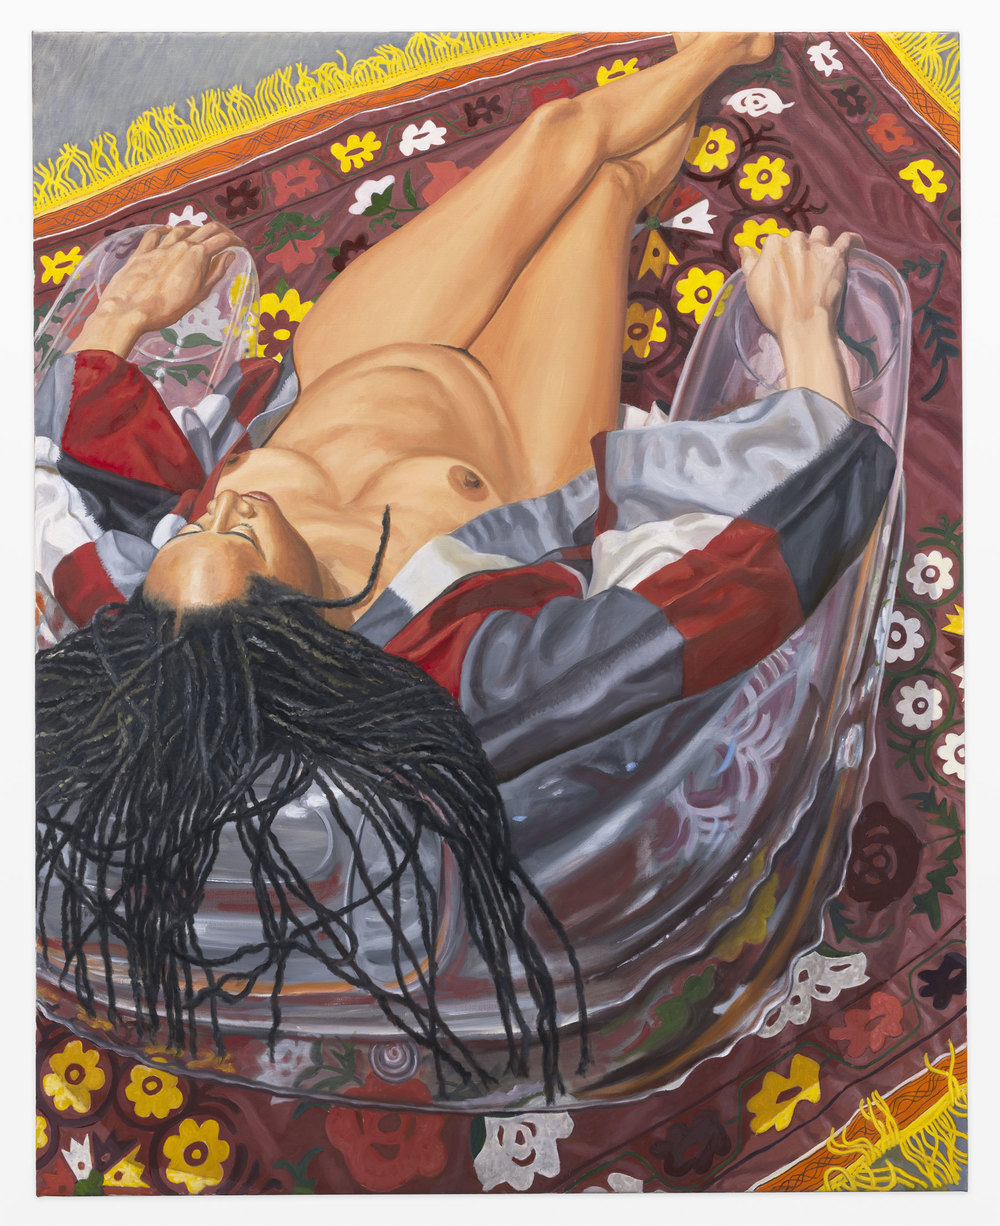 Model with Kimono on Clear Plastic Chair with Floral Rug , 2011 Oil on canvas 60 x 48 inches